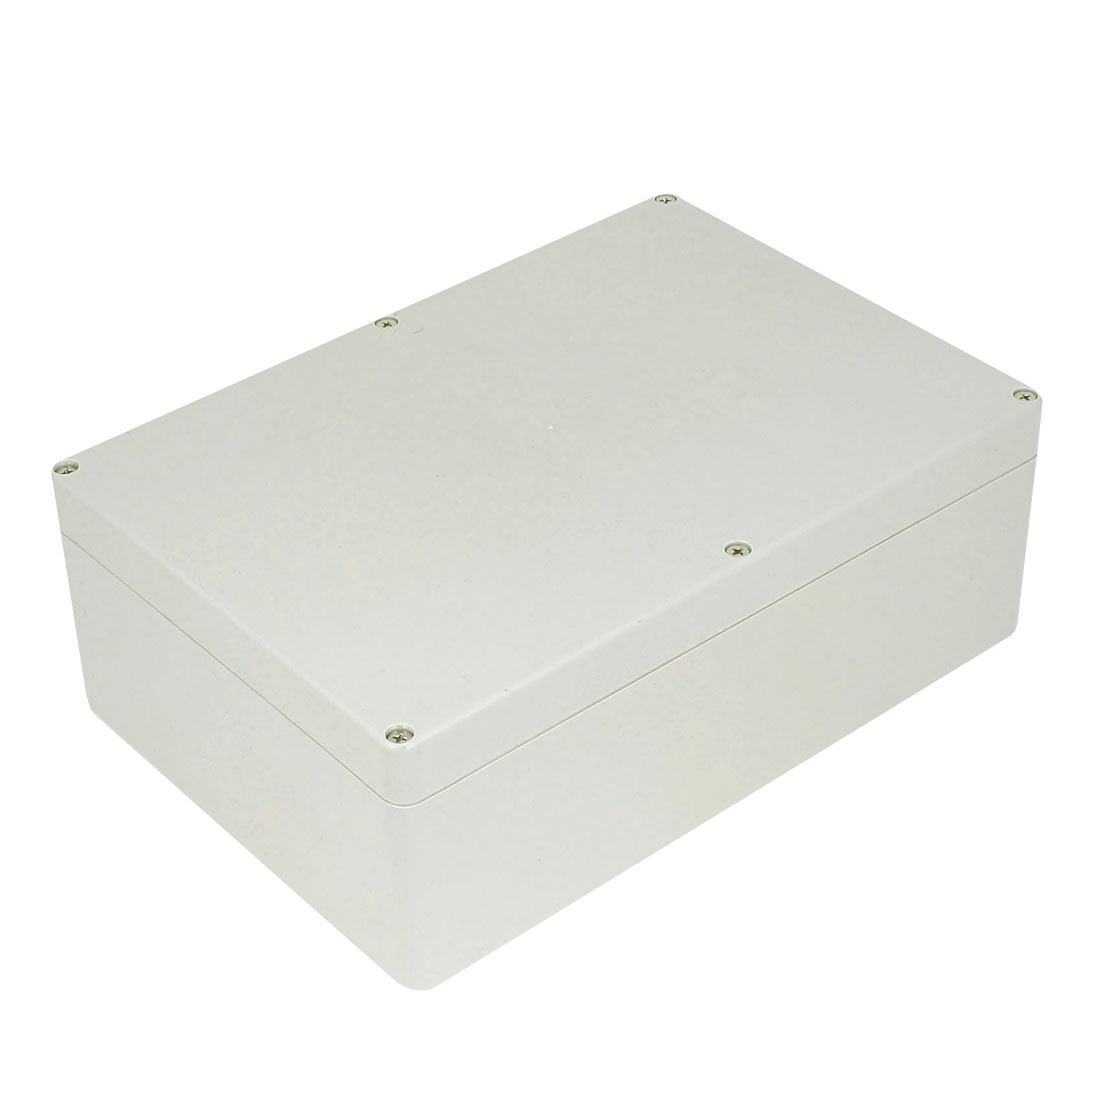 265mm x 185mm x 95mm Dustproof IP65 Sealed DIY Joint Electrical Junction Box